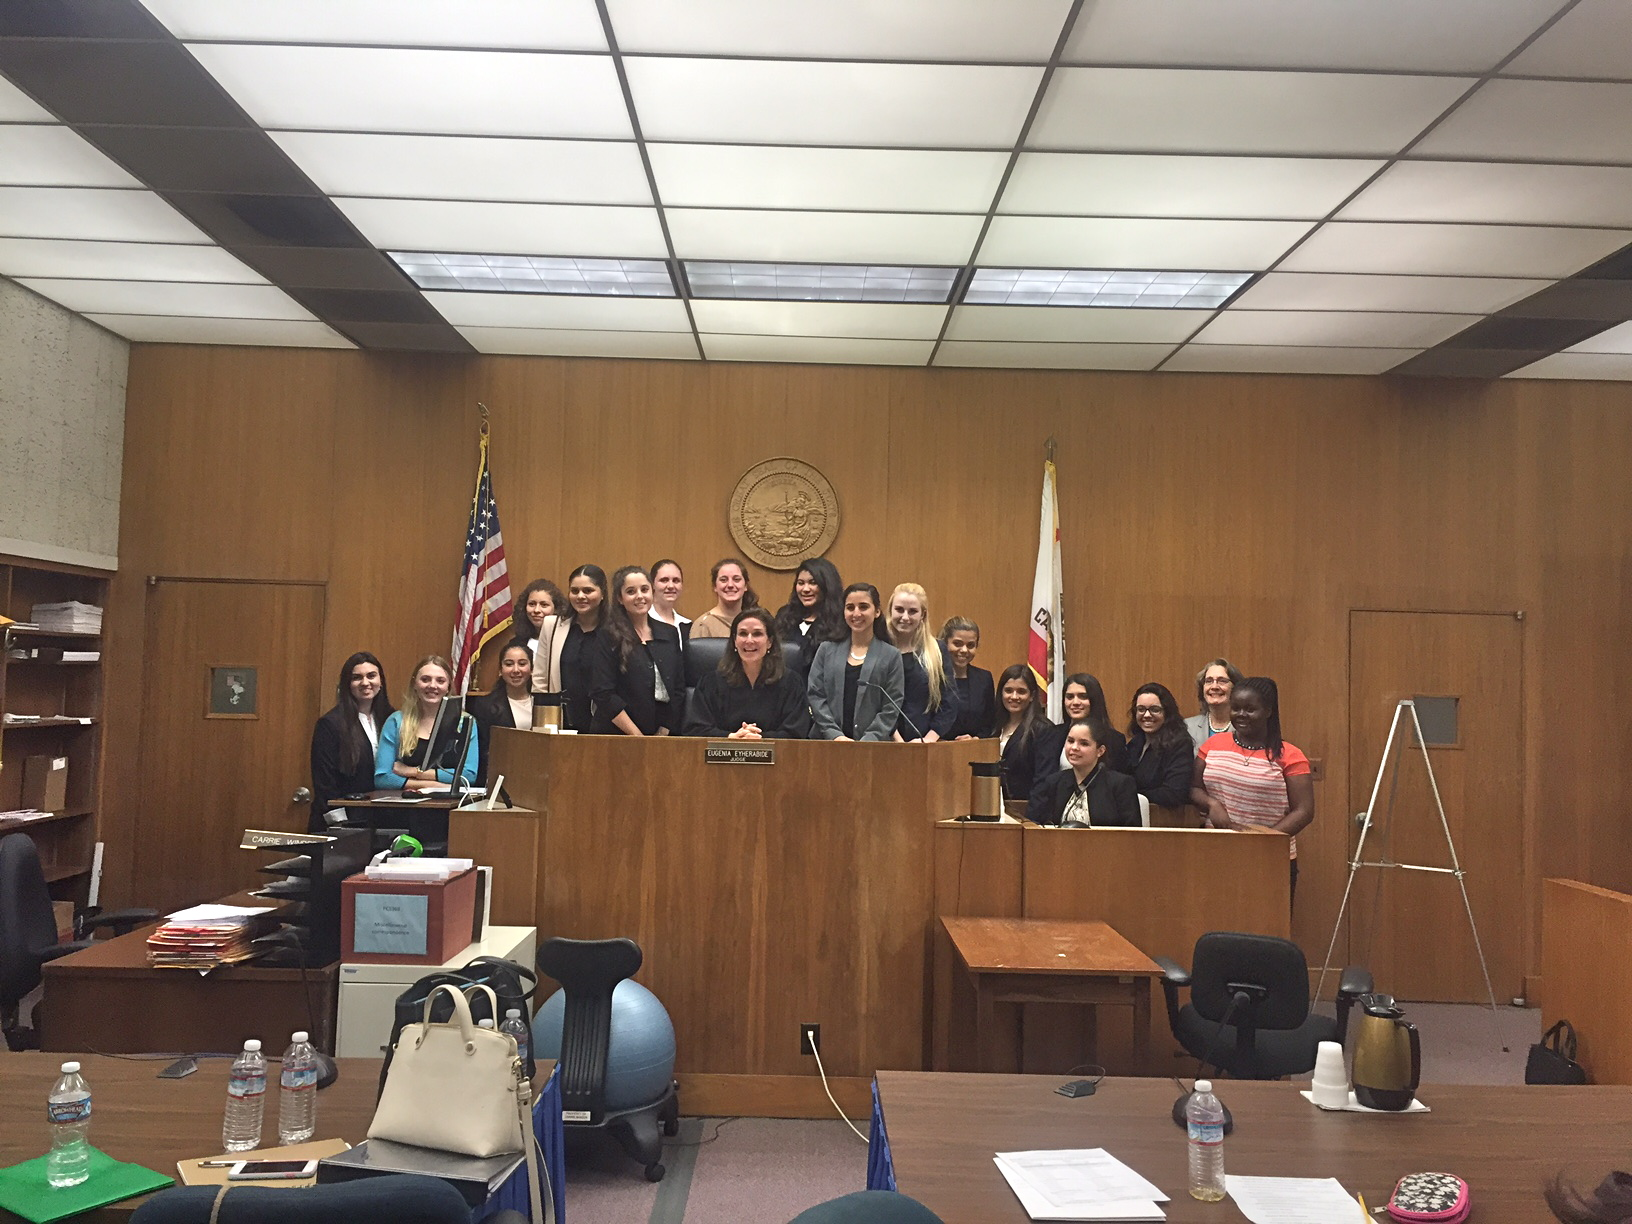 The Mock Trial Team from the Academy of Our Lady of Peace